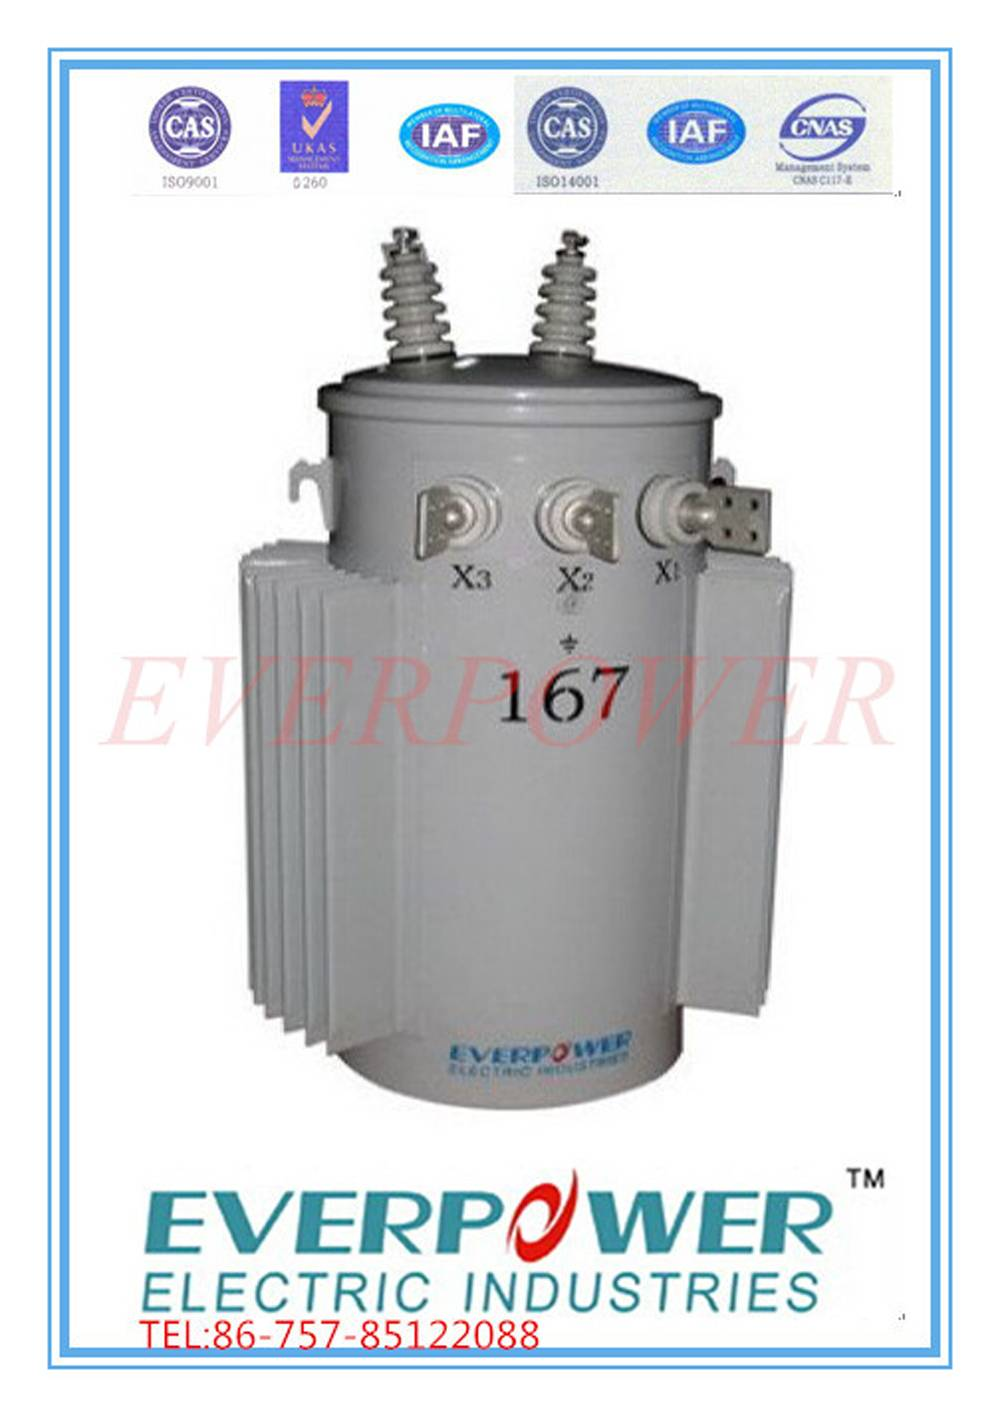 Single phase Pole mounted transformer 13.2Gd.Y/7.62kV